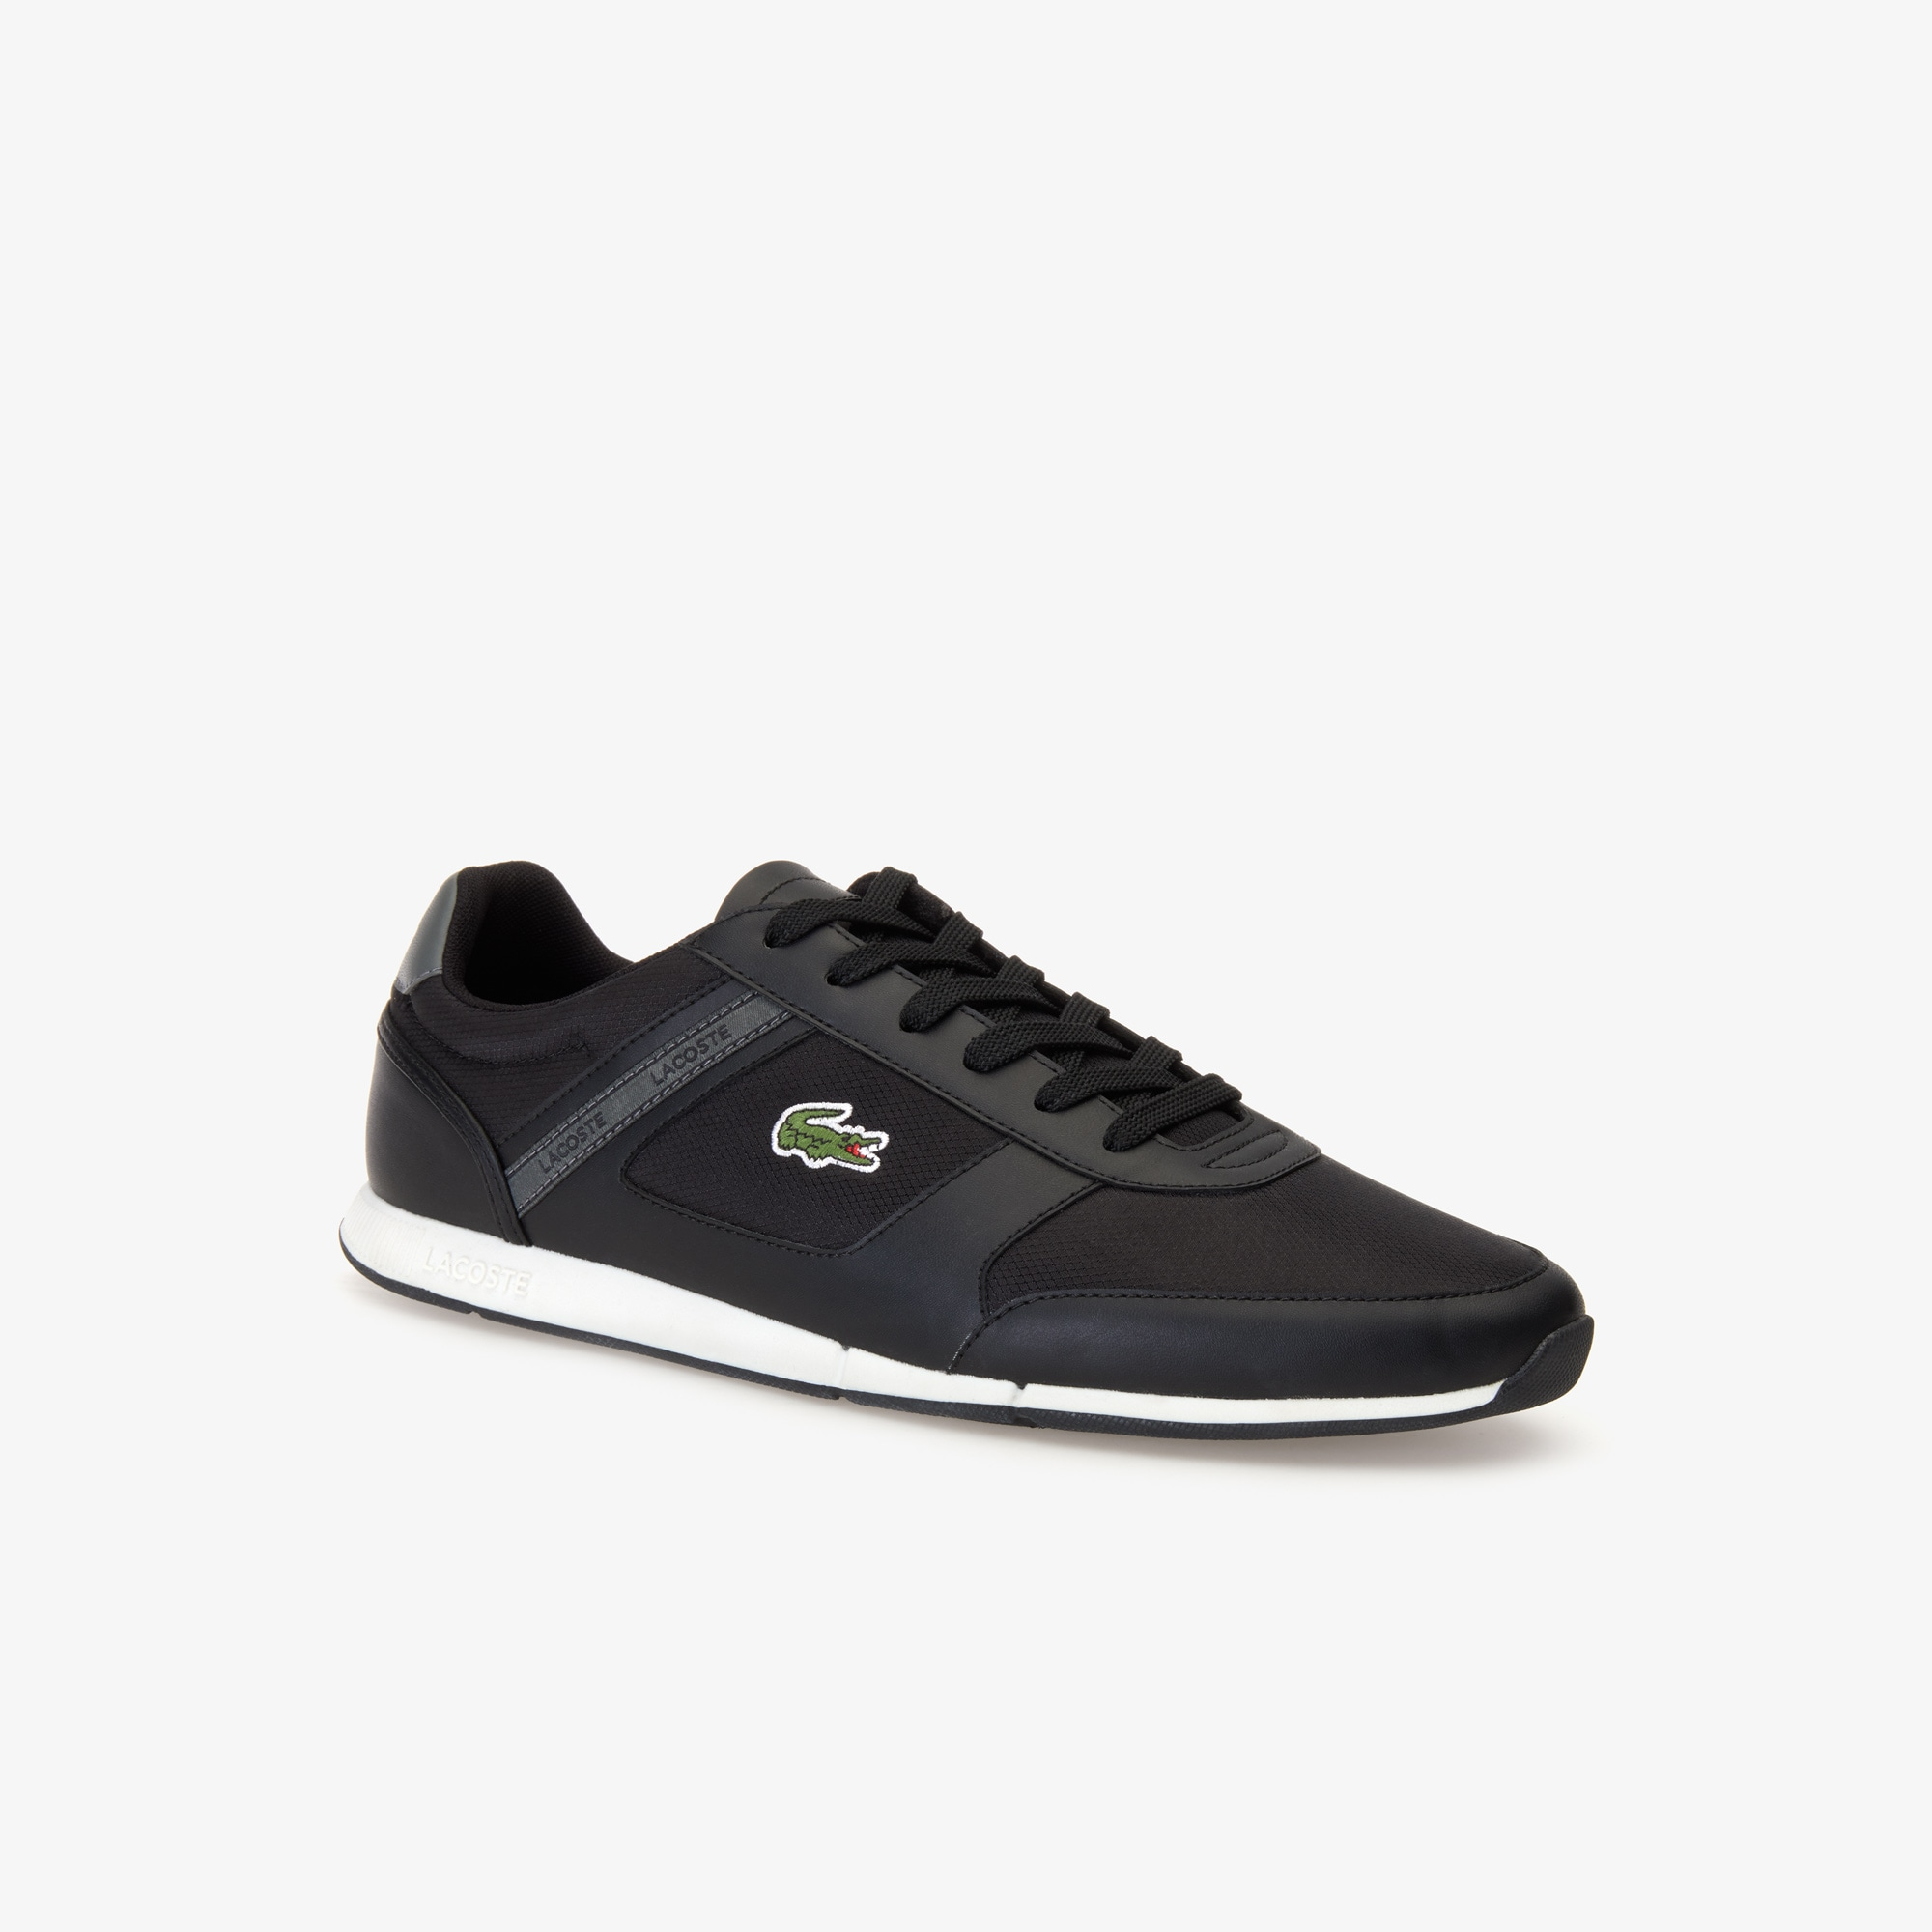 Homme Chaussures Chaussures Lacoste Collection Collection Homme Homme Lacoste Chaussures 1Rxwtx6qO5